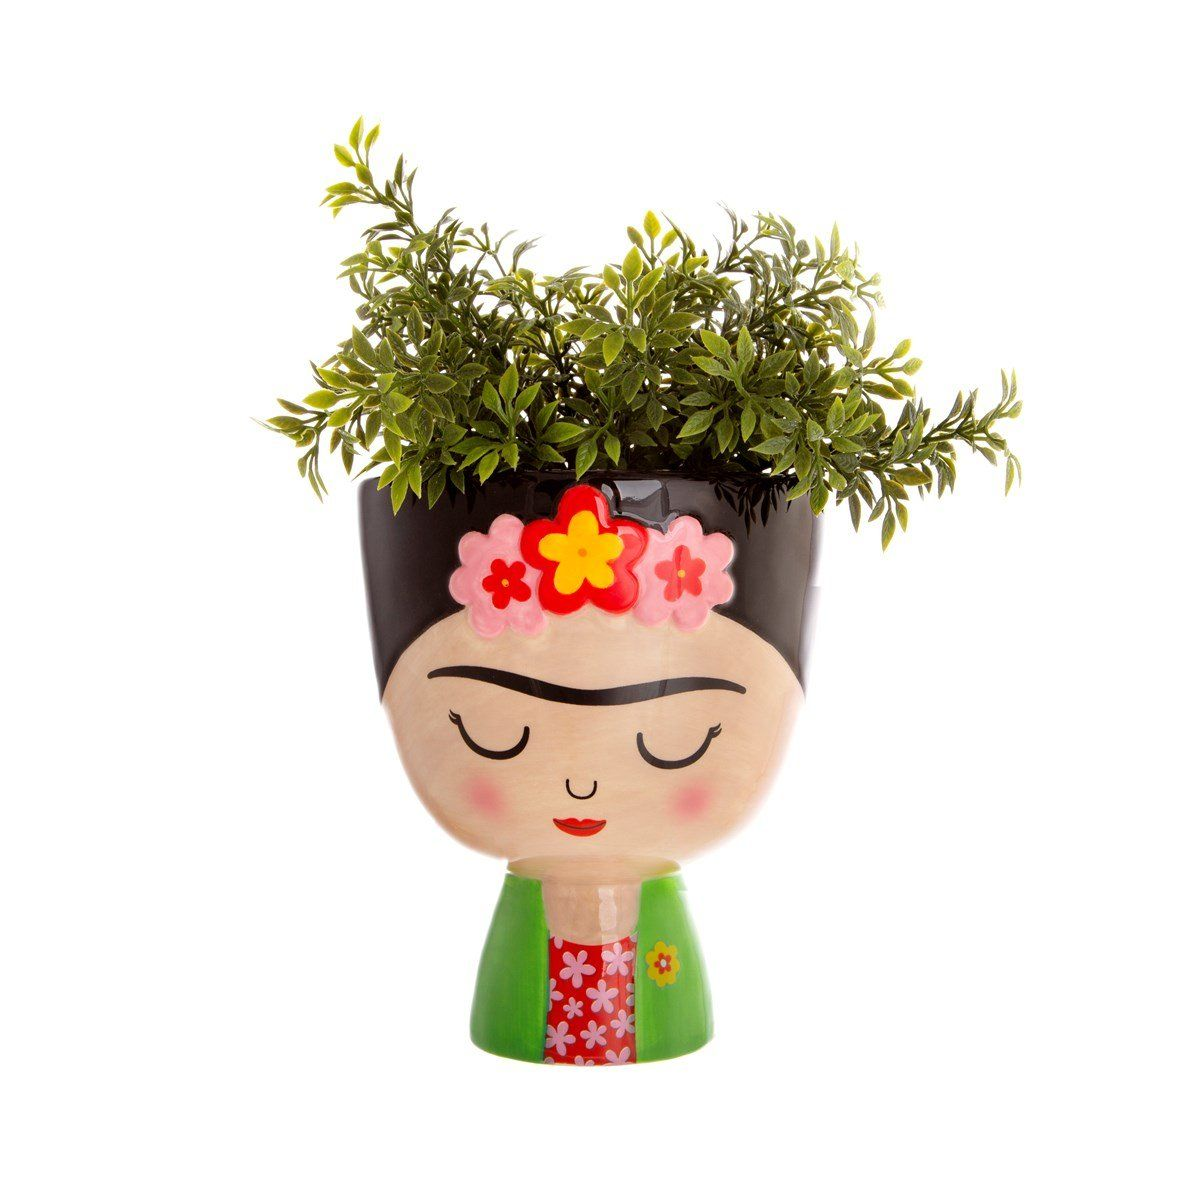 Frida Kahlo Planter With Images Planters Indoor Planters Frida Kahlo